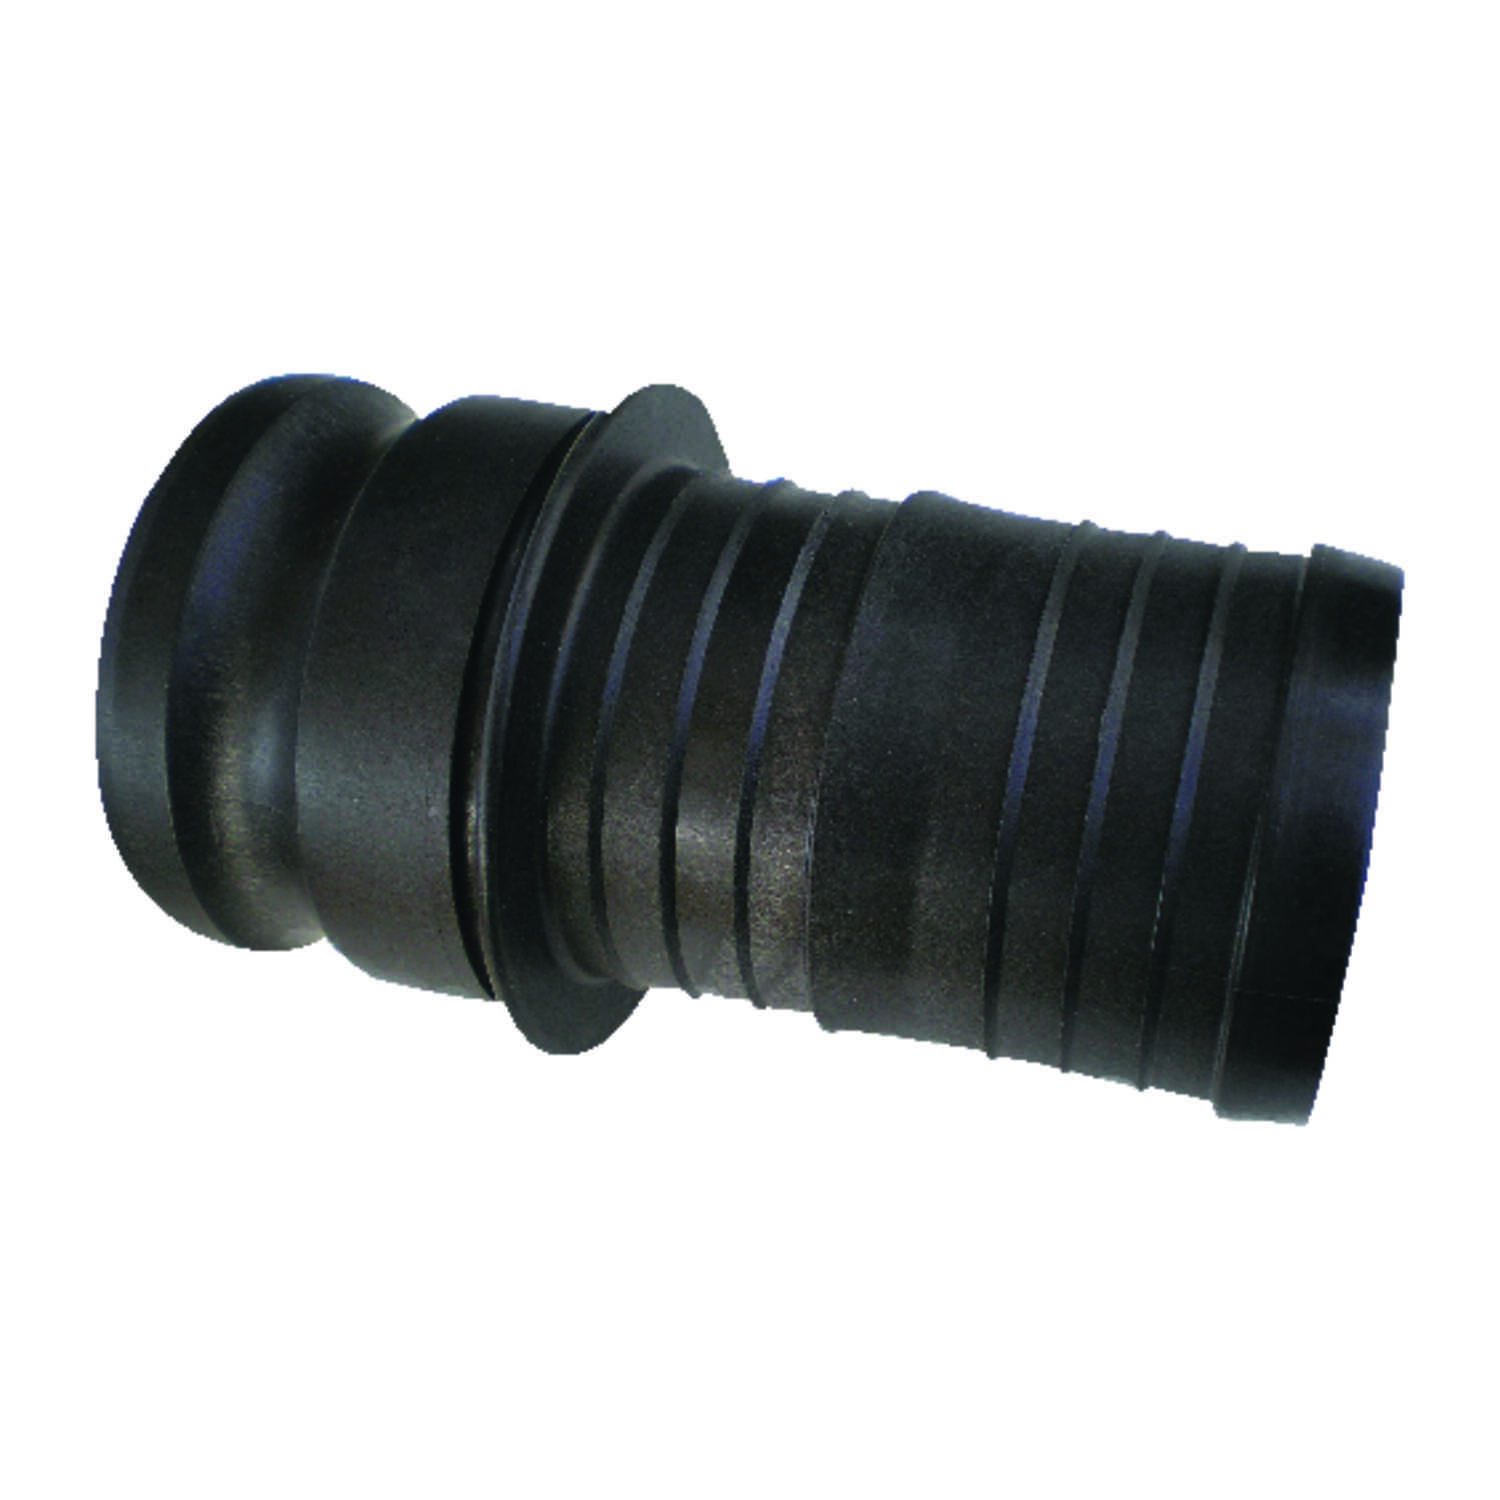 Pacer  Polypropylene  Male Hose Adapter  2 in. Dia. x 2 in. Dia. Black  1 pk